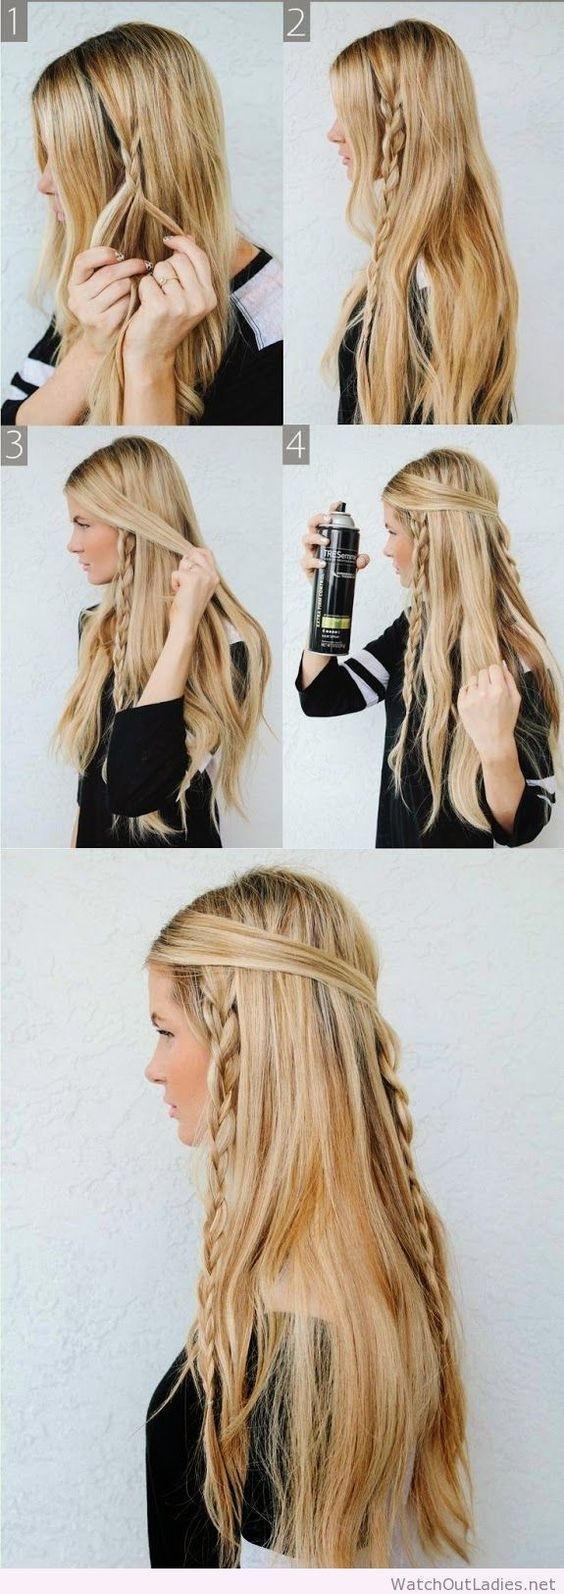 1ebdaca82f389a9da812a45dfcce3cef - How To Grow Your Hair Faster 1 To 2 Inches In Just 1 Week